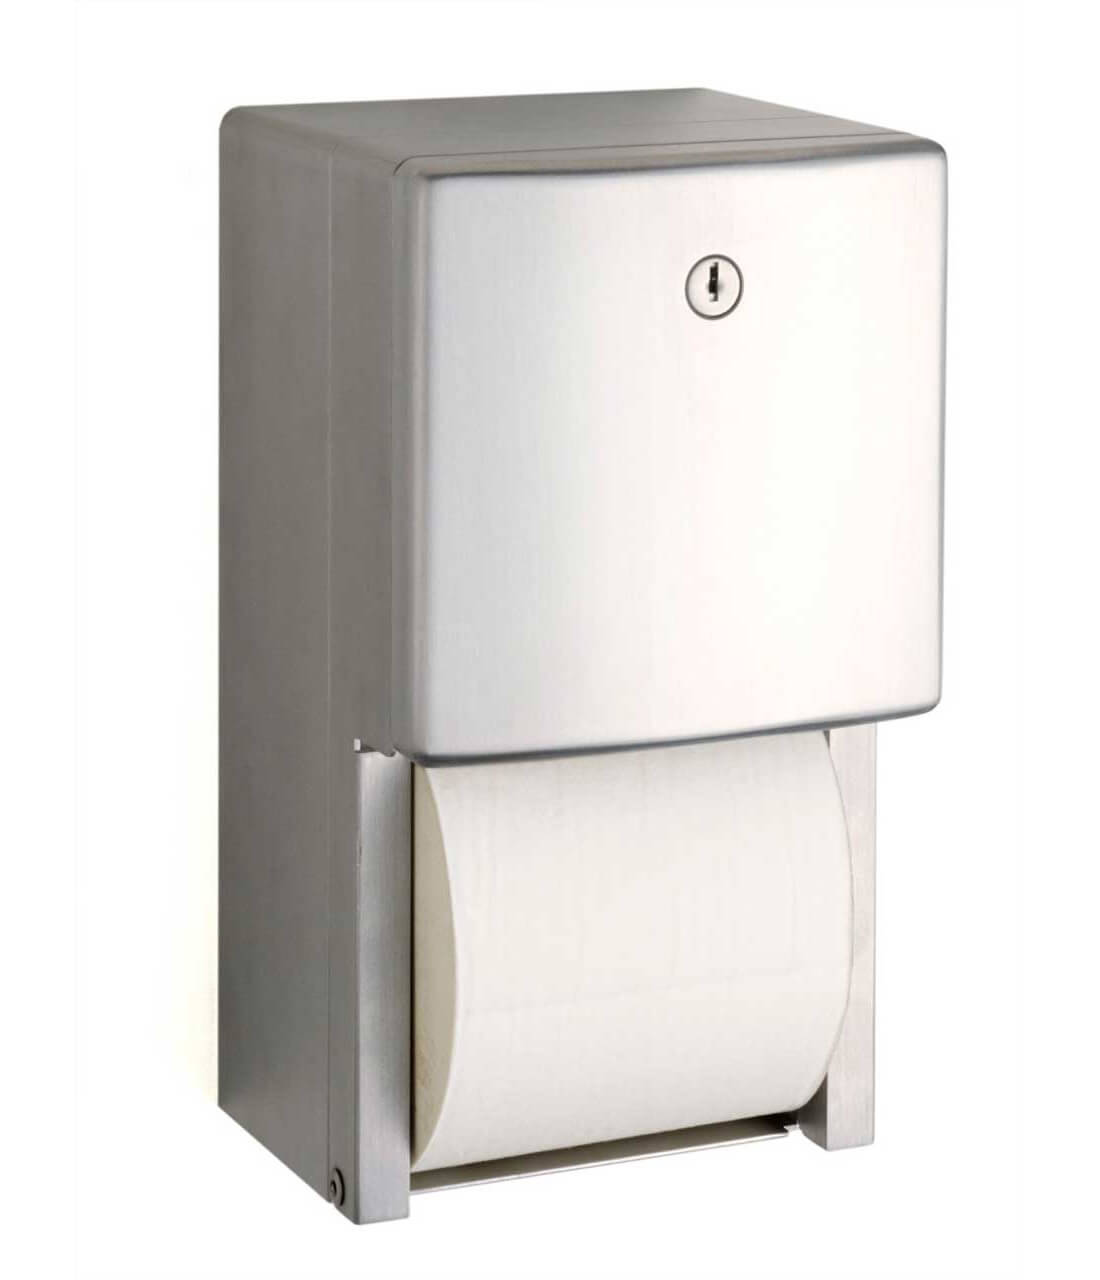 Stainless Steel Toilet Paper Stand Stainless Steel Double Roll Toilet Tissue Dispenser Bag